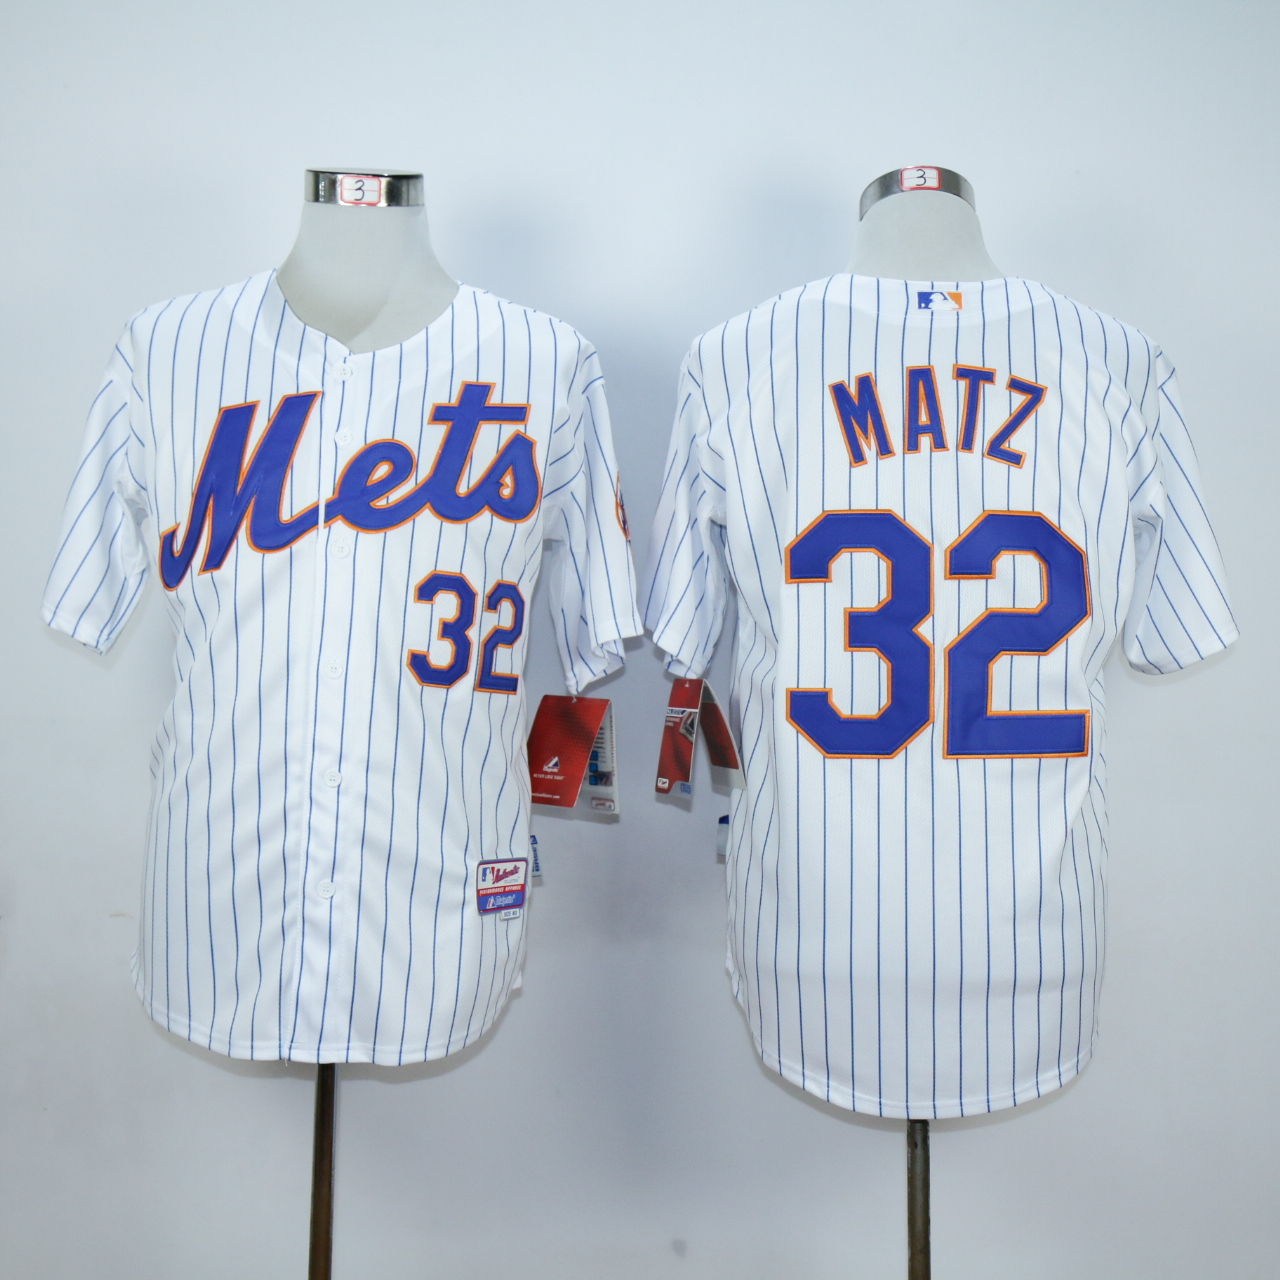 MLB New York Mets 32 Matz white jerseys